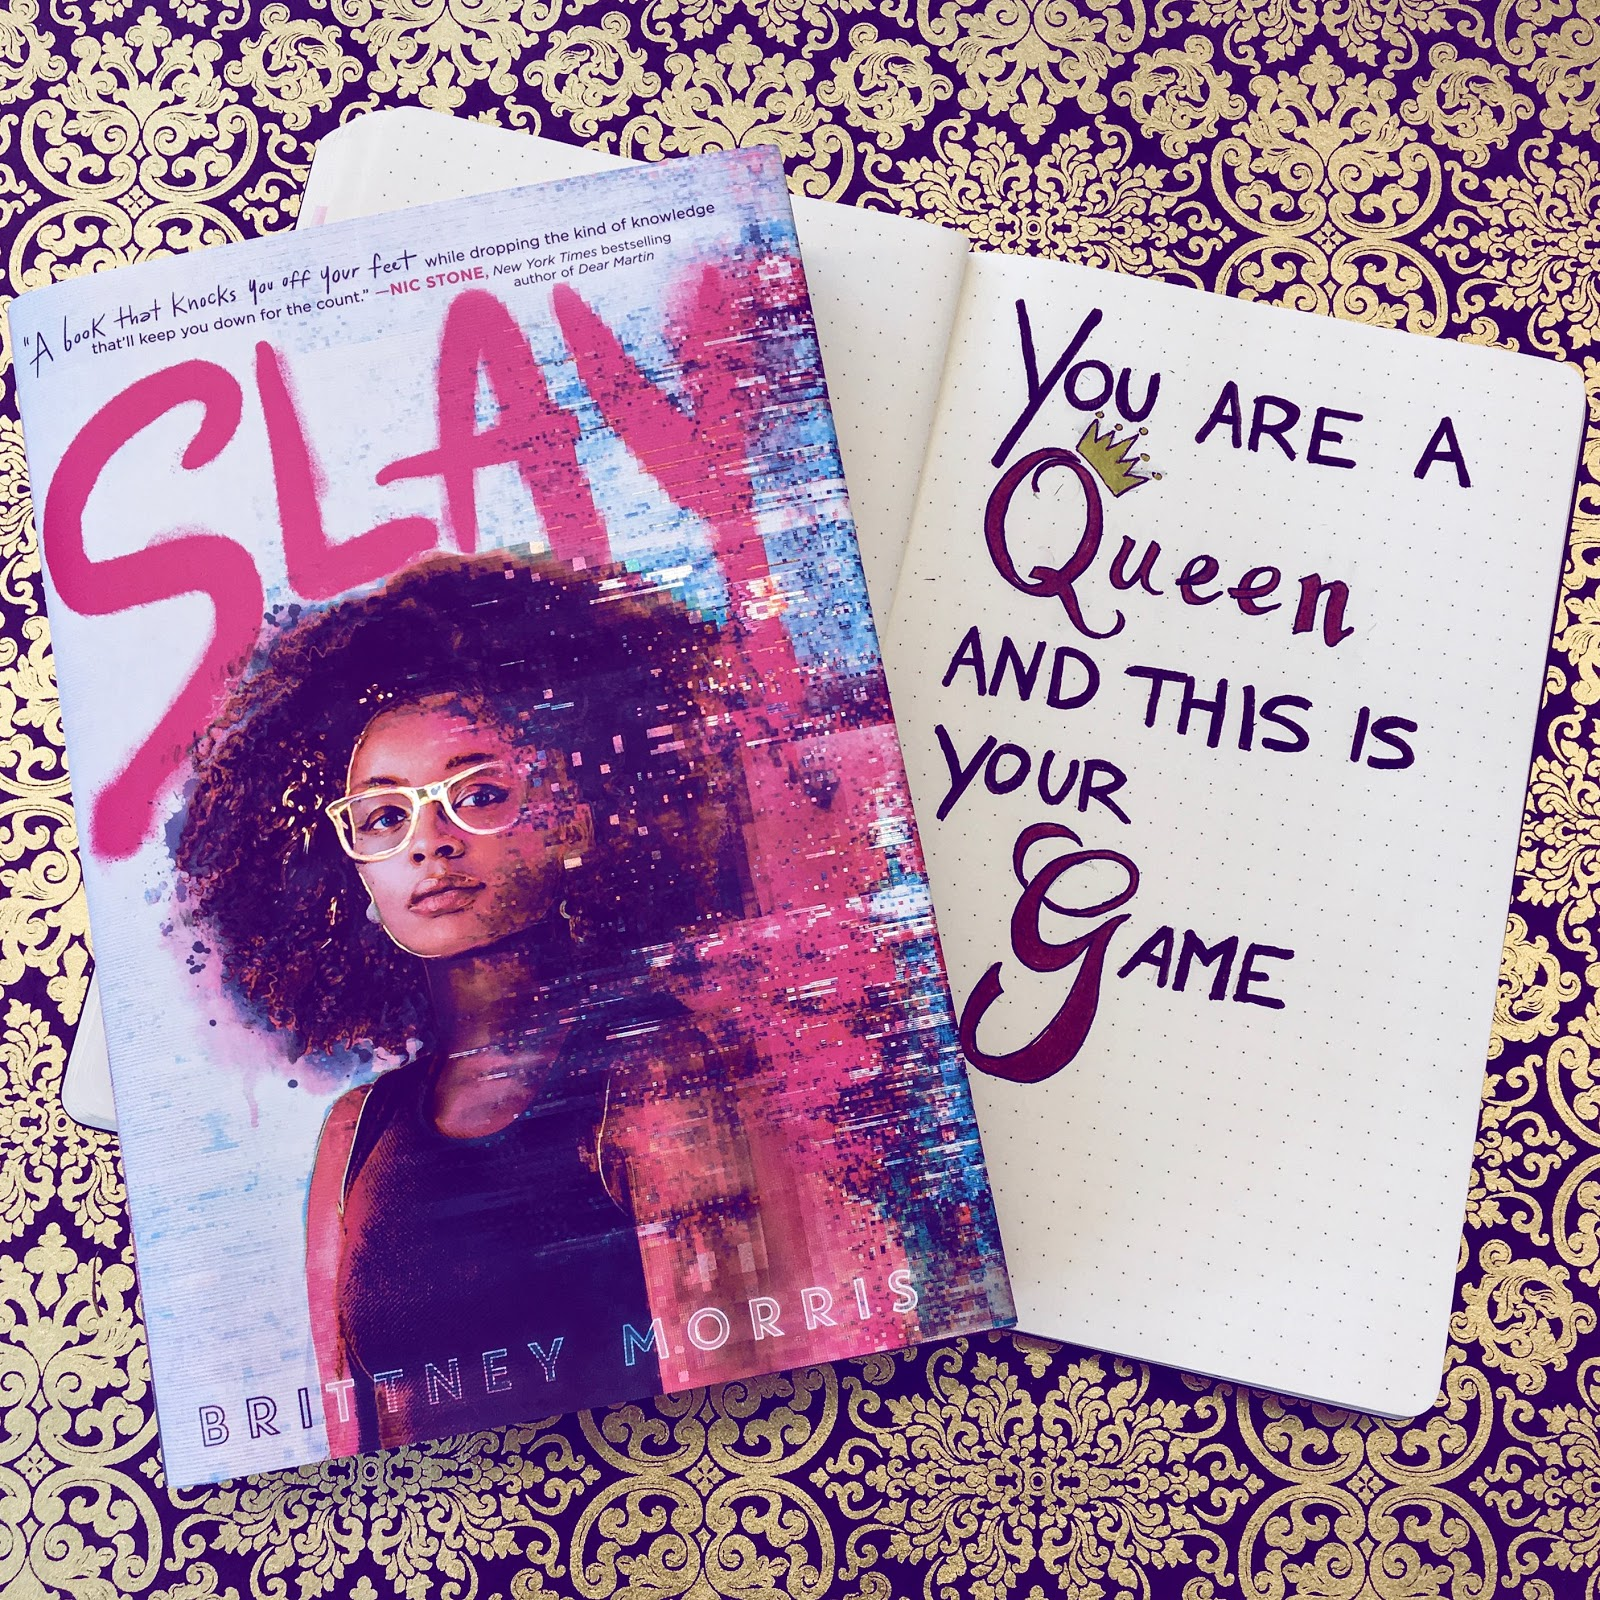 The cover of Slay by Brittney Morris is accompanied by the slogan: You are a Queen and this is your game.